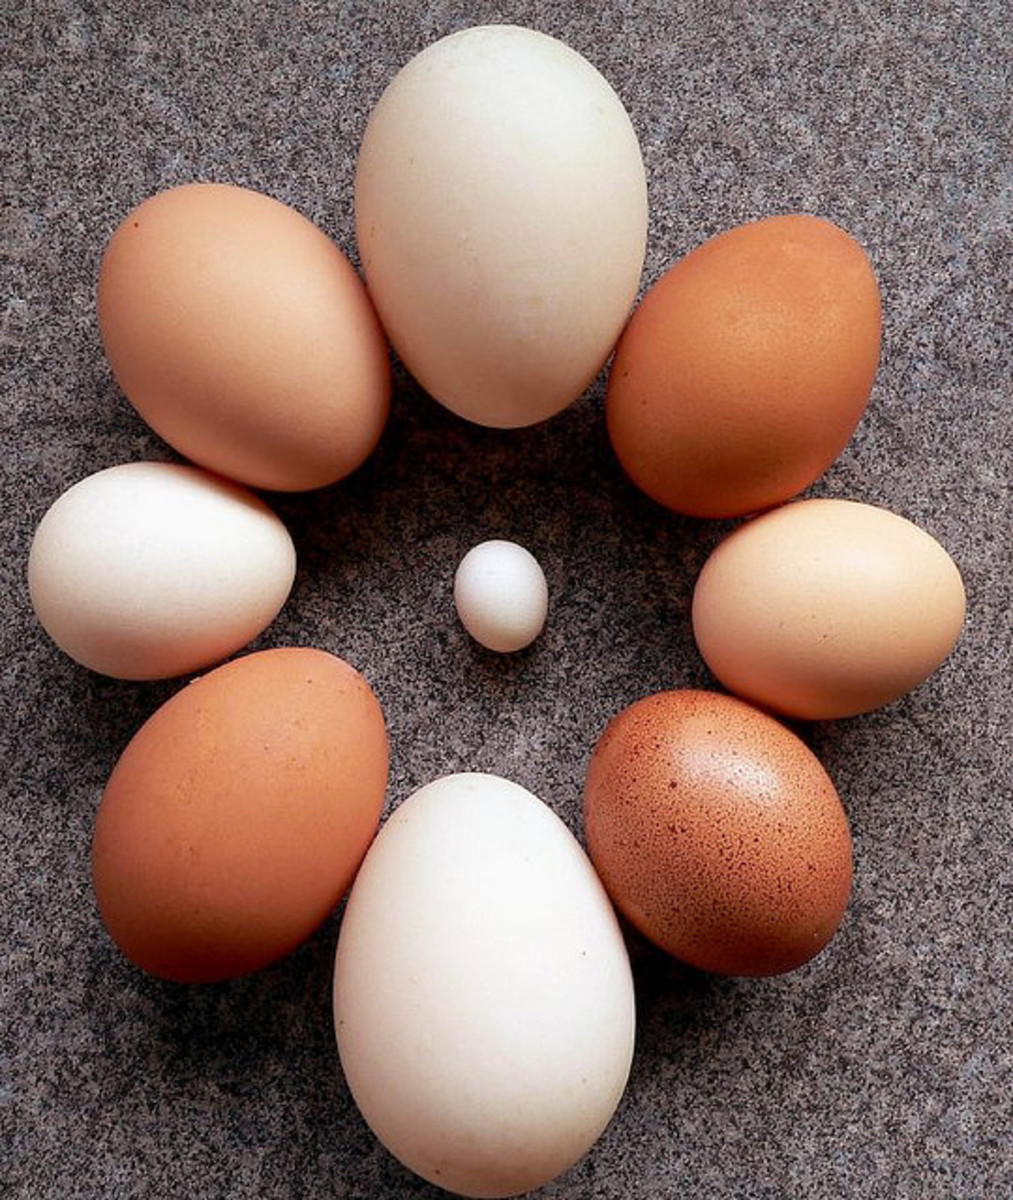 How an Egg is Formed - Egg Anomalies - Abnormal Eggs - Egg-cellent Information